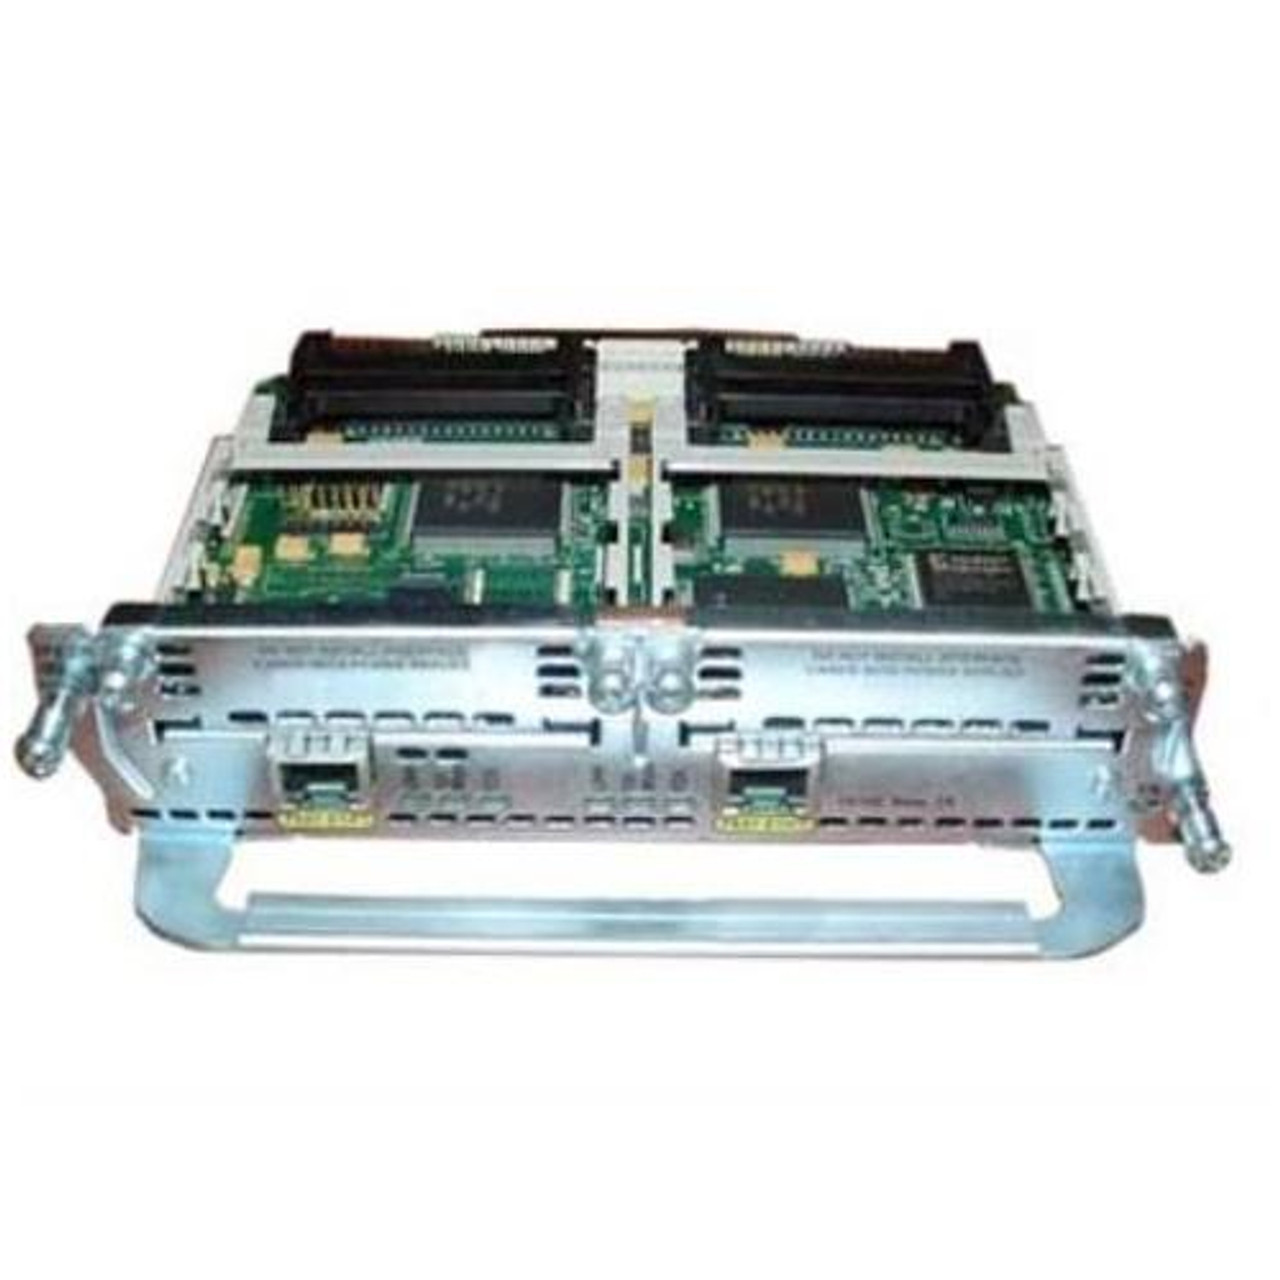 CISCO NM-2FE2W-V2 2 PORT 10//100 ETHERNET WITH 2 WAN CARD SLOT NETWORK MODULE